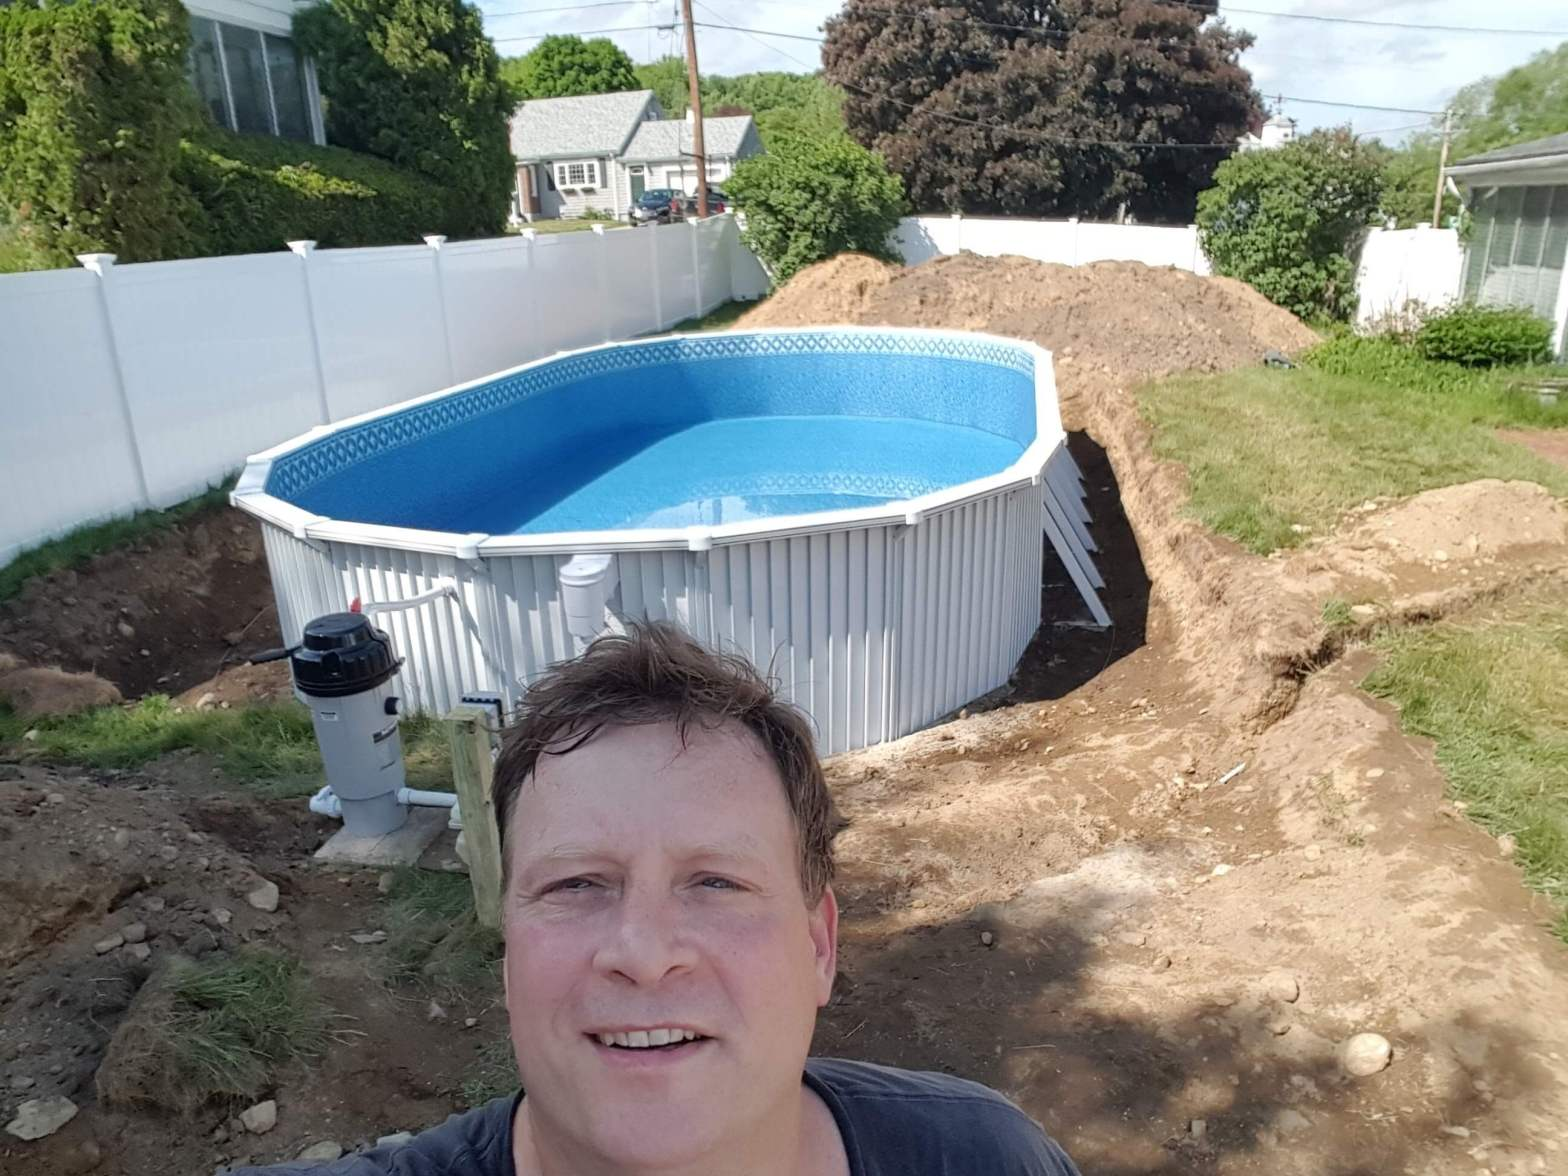 Semi Inground Pools - Brands Options Prices Reviews and Advice